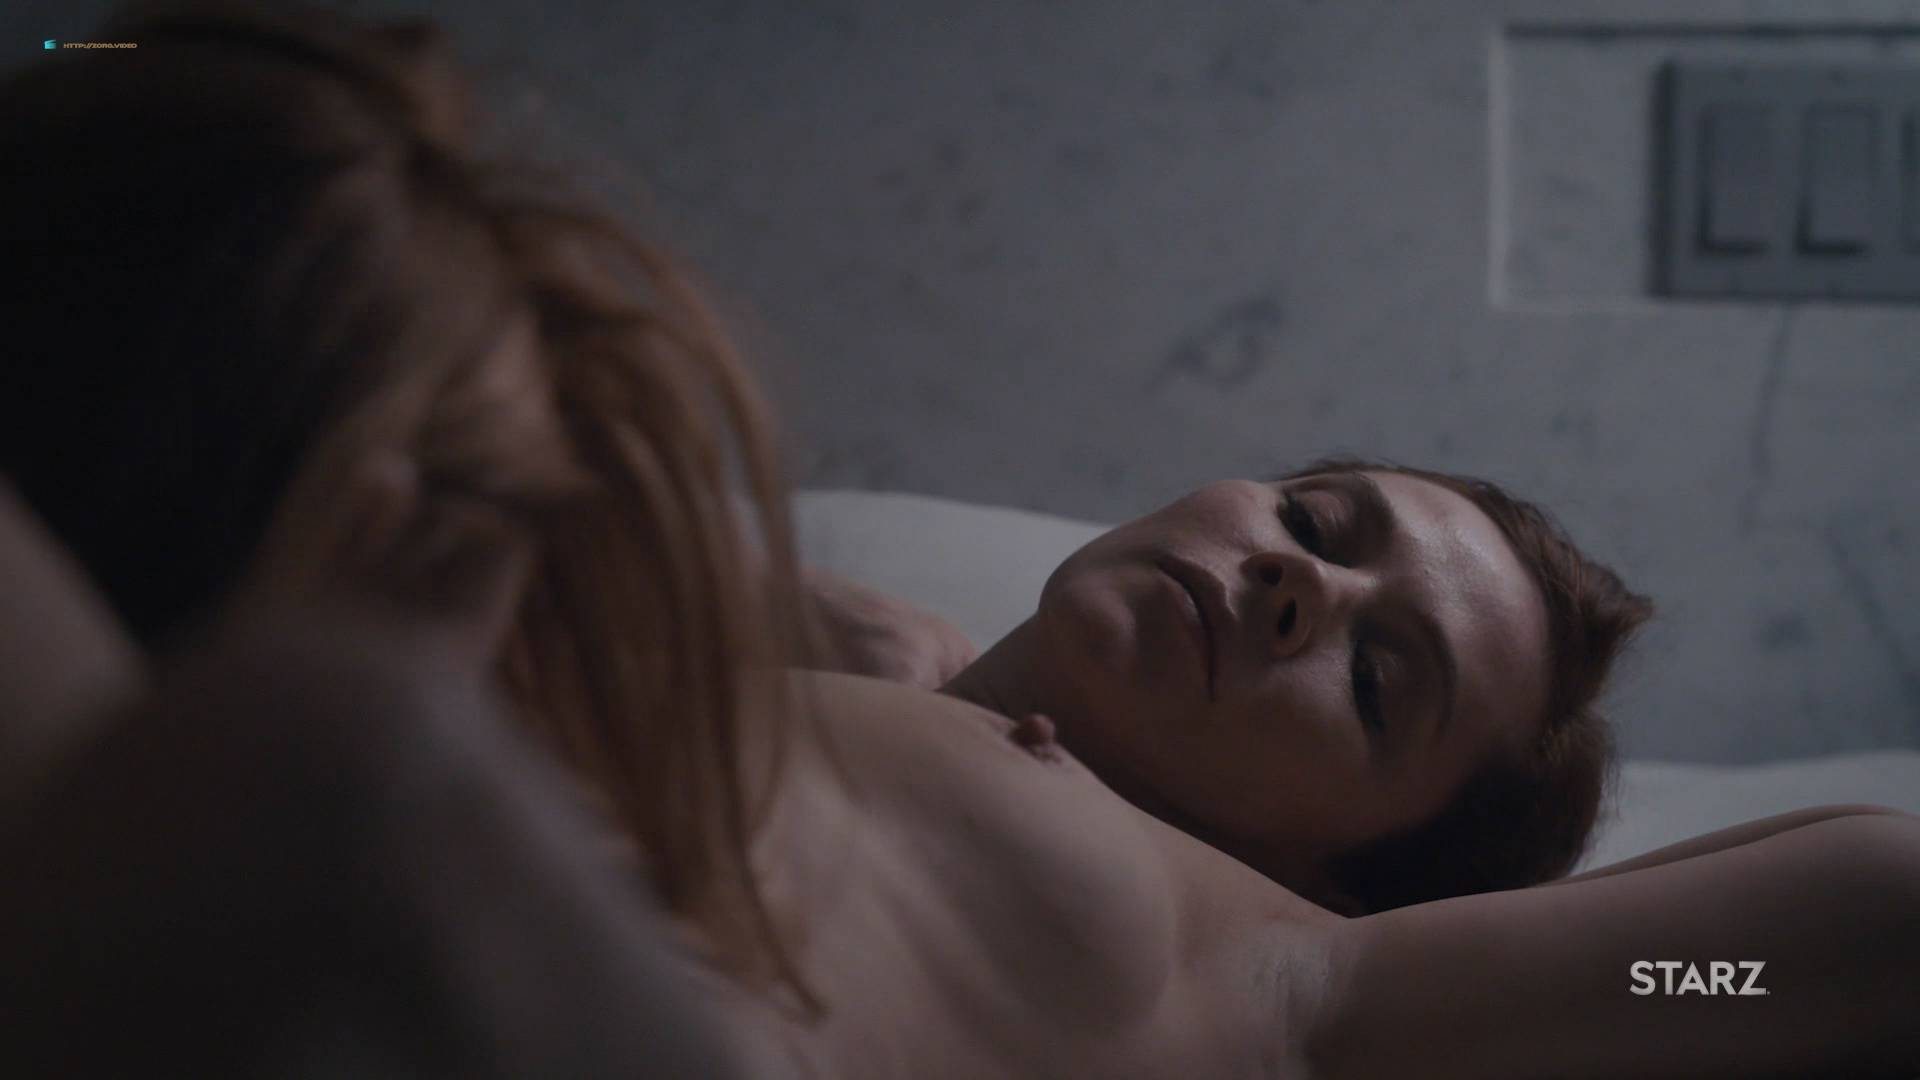 Anna-Friel-nude-and-lesbian-sex-with-Louisa-Krause-The-Girlfriend-Experience-2017-s2e3-HD-1080p-Web-07.jpg